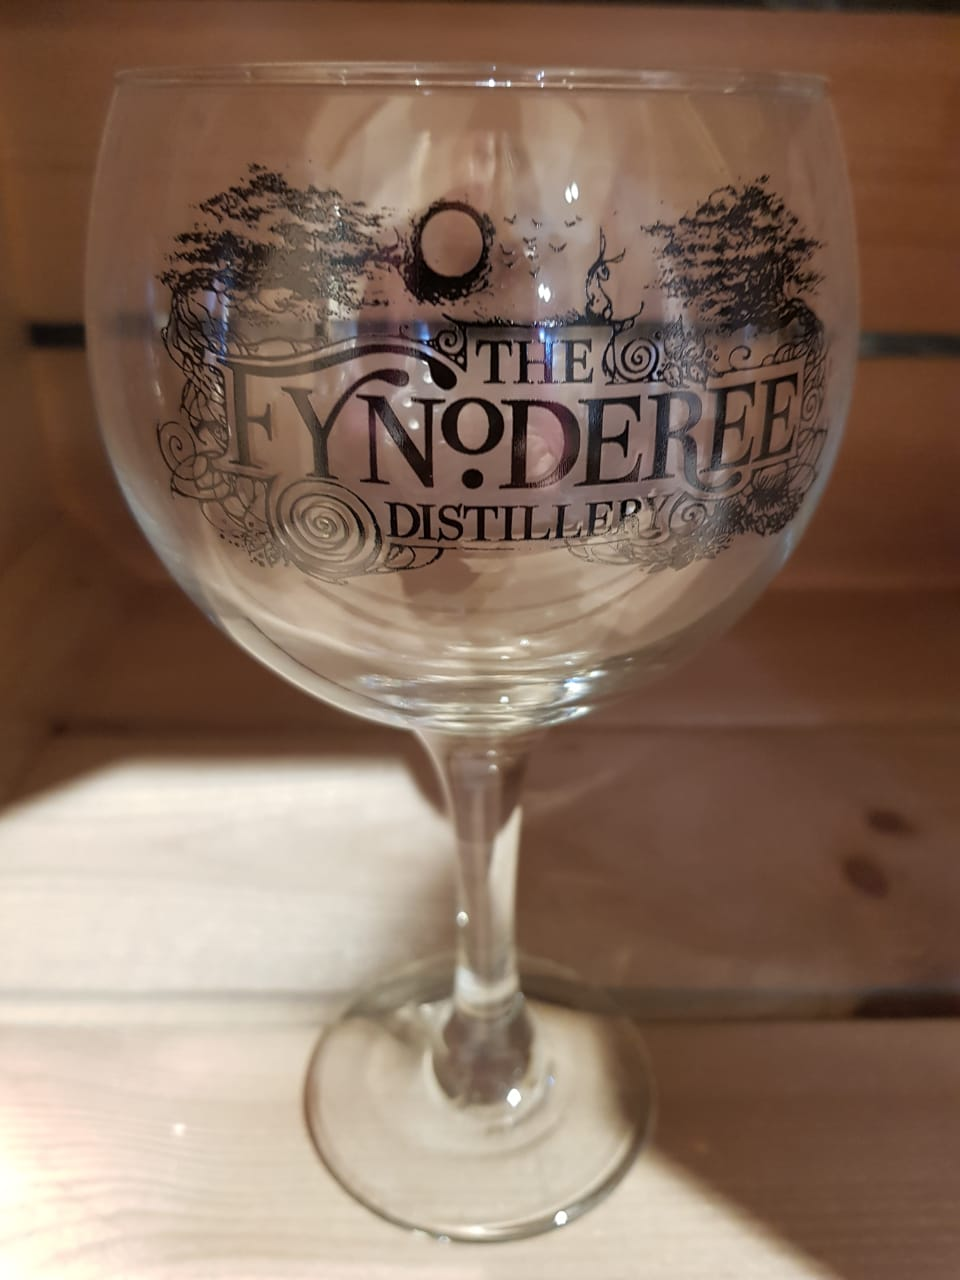 Fynoderee gin glass